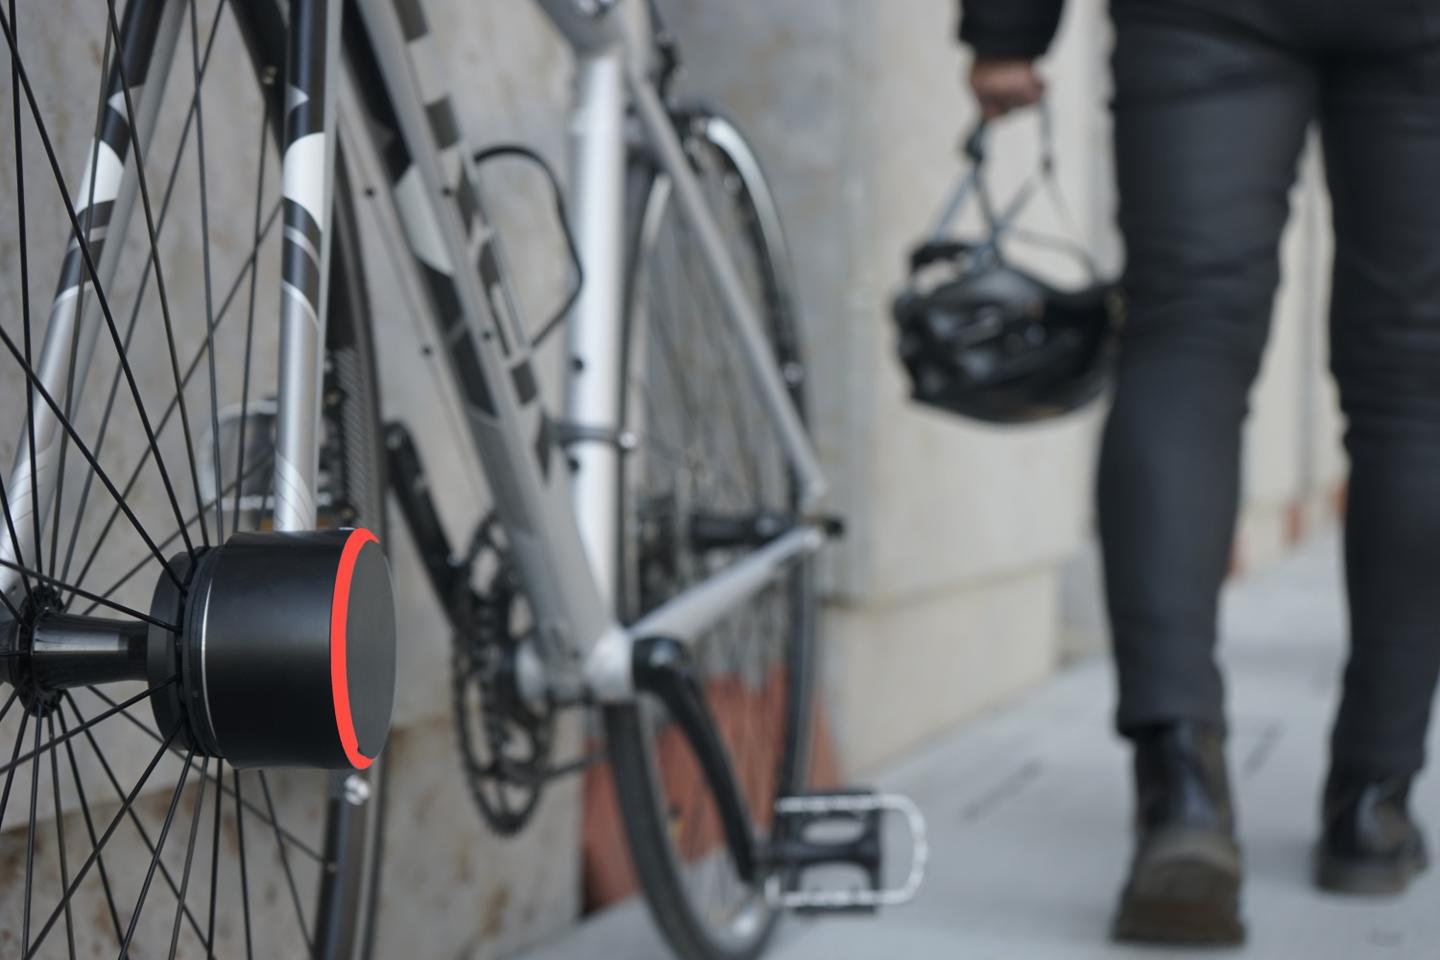 The Bisecu automatically locks up the front wheel as the rider (and their smartphone) walks away